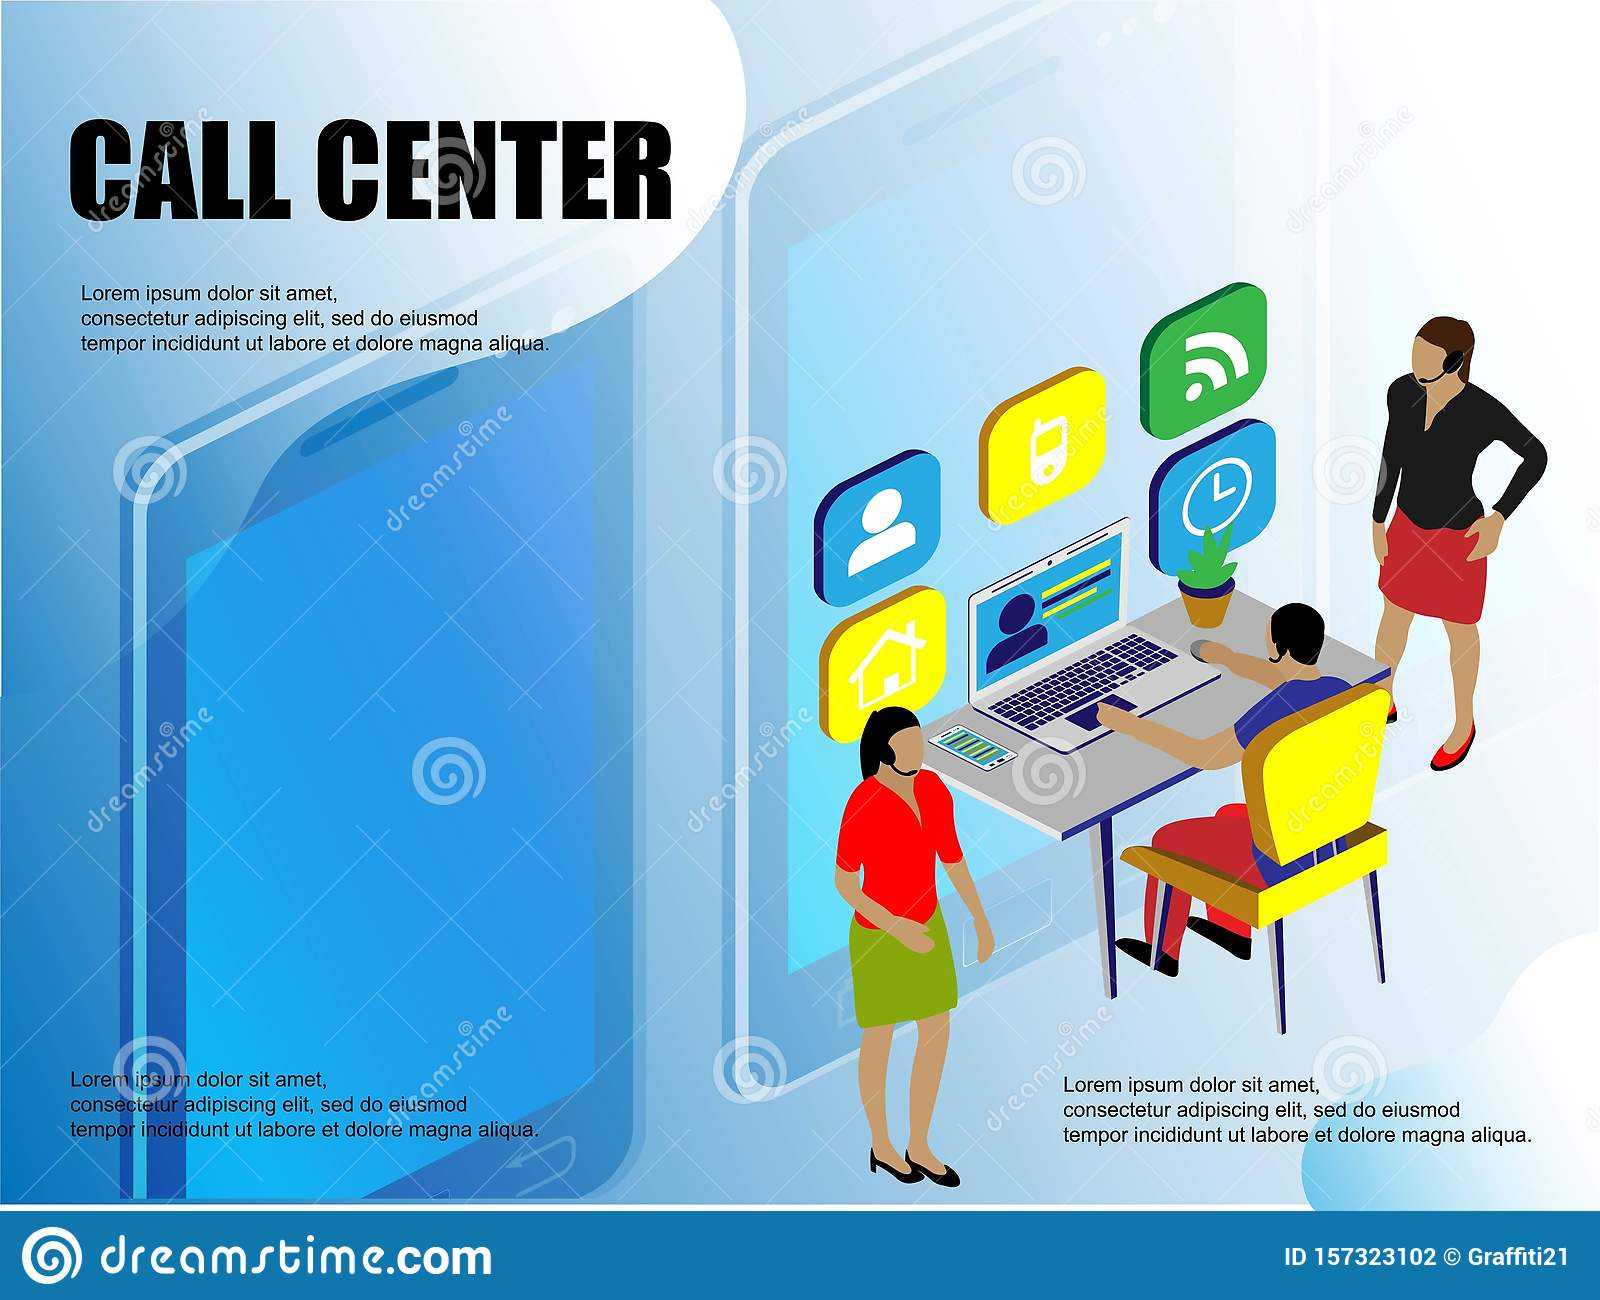 Call Center Flat Illustration Office Business Concept